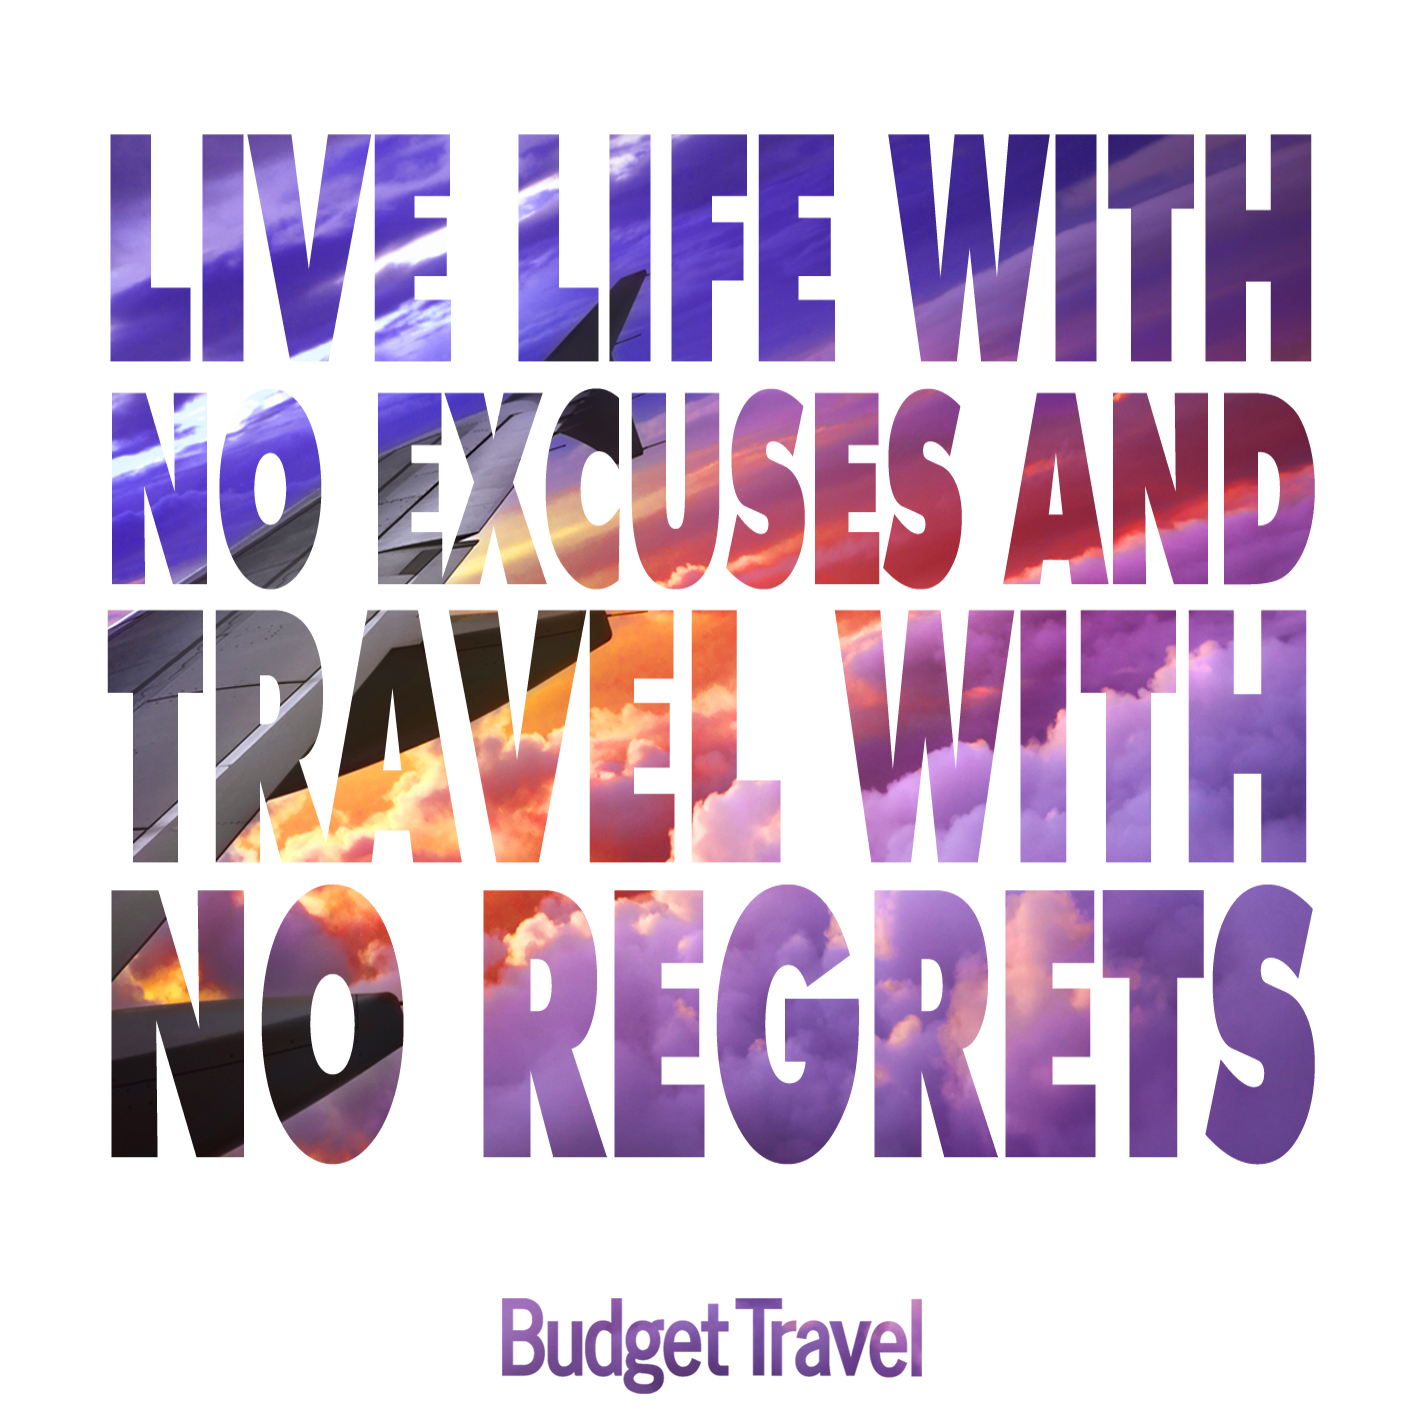 travel-with-no-regrets-472015-191848_original